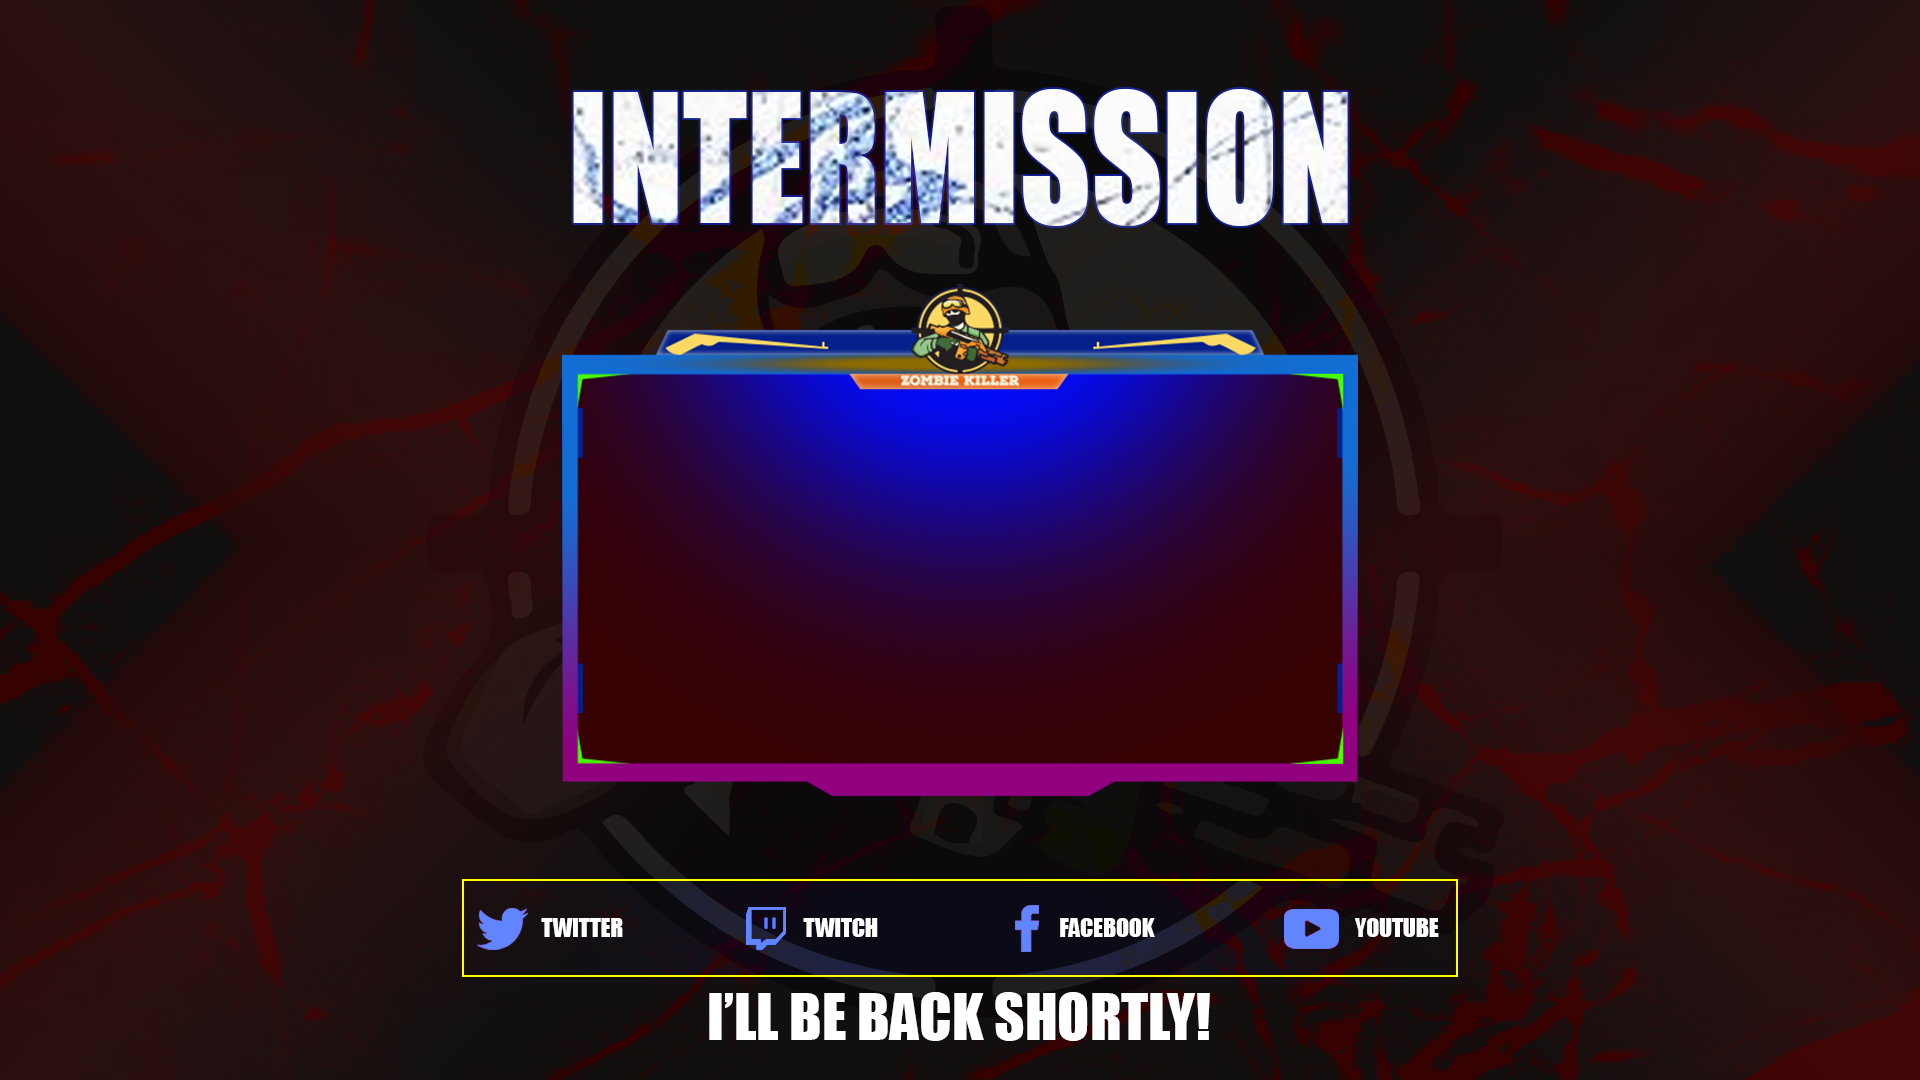 Design gaming twitch overlay, logo and screen for streamers